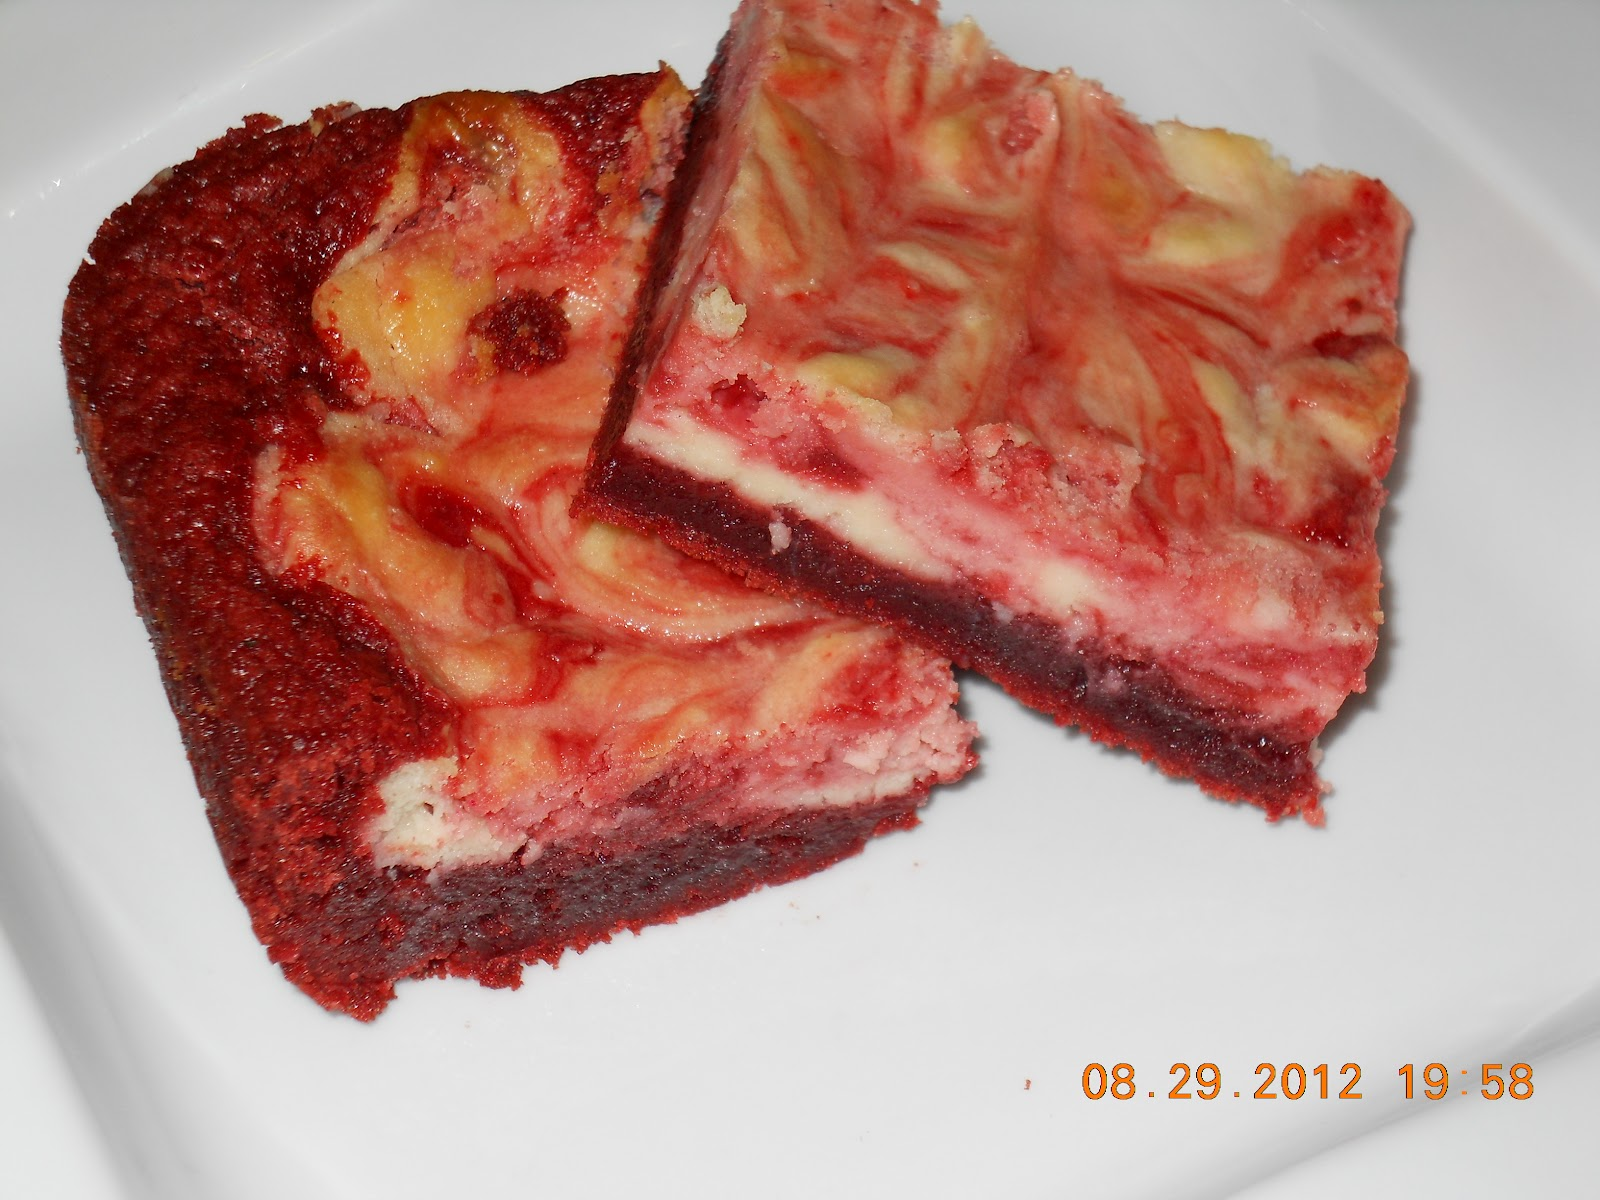 ... Desserts made Delicious: Gluten Free Red Velvet Cheesecake Brownies